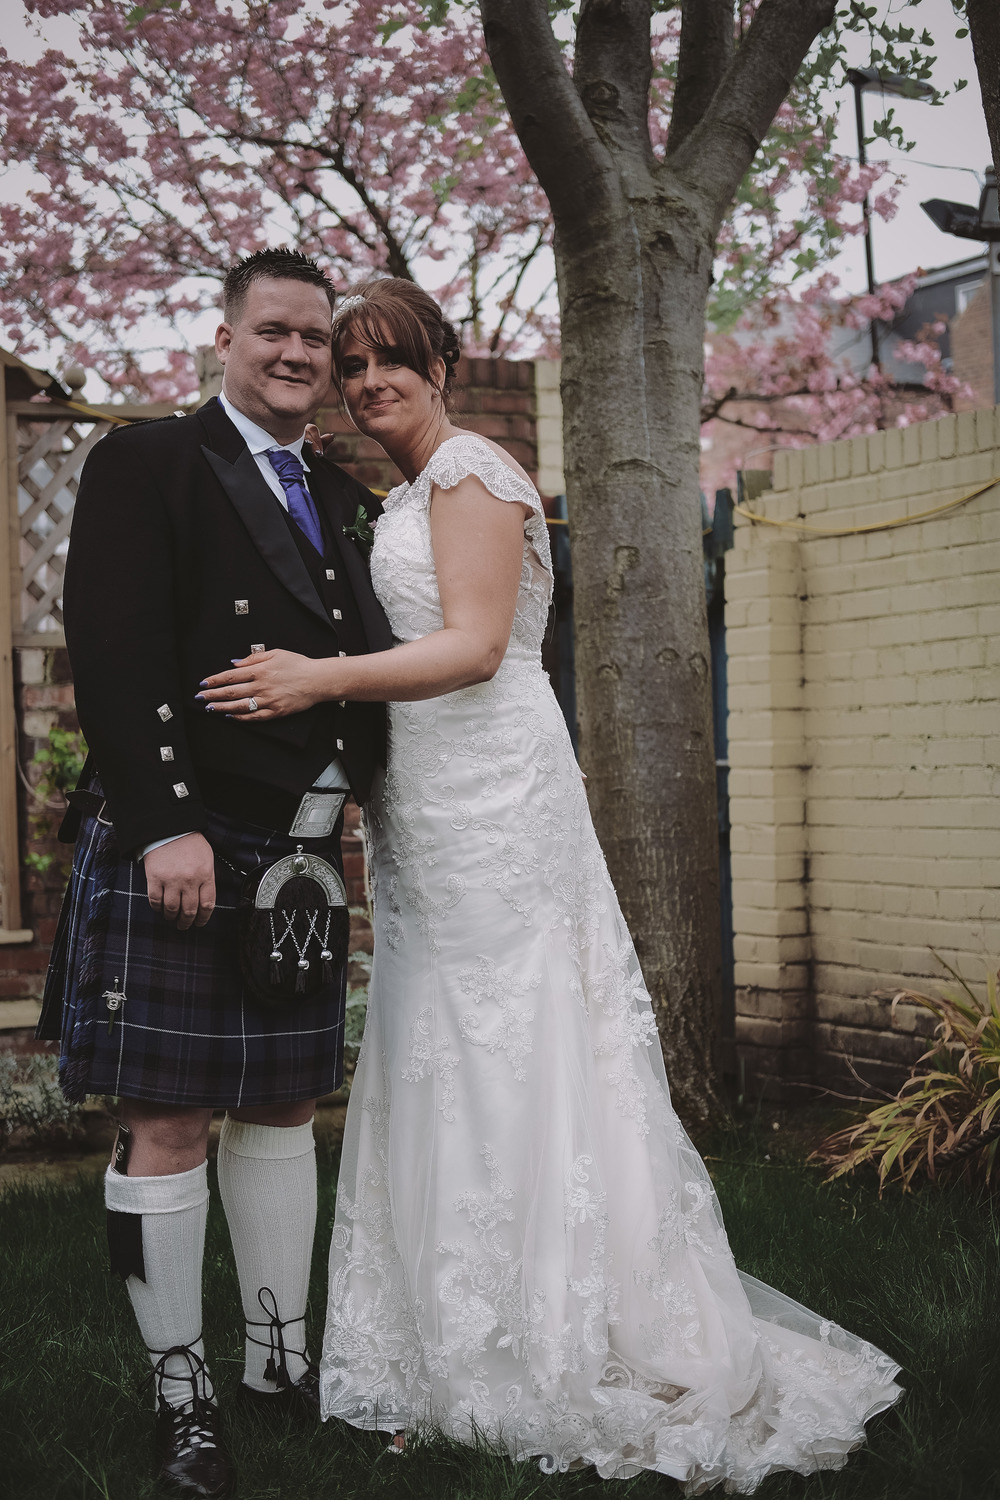 Newcastle Wedding Photographer // Bride and groom pose under blossom tree at Caledonian Hotel